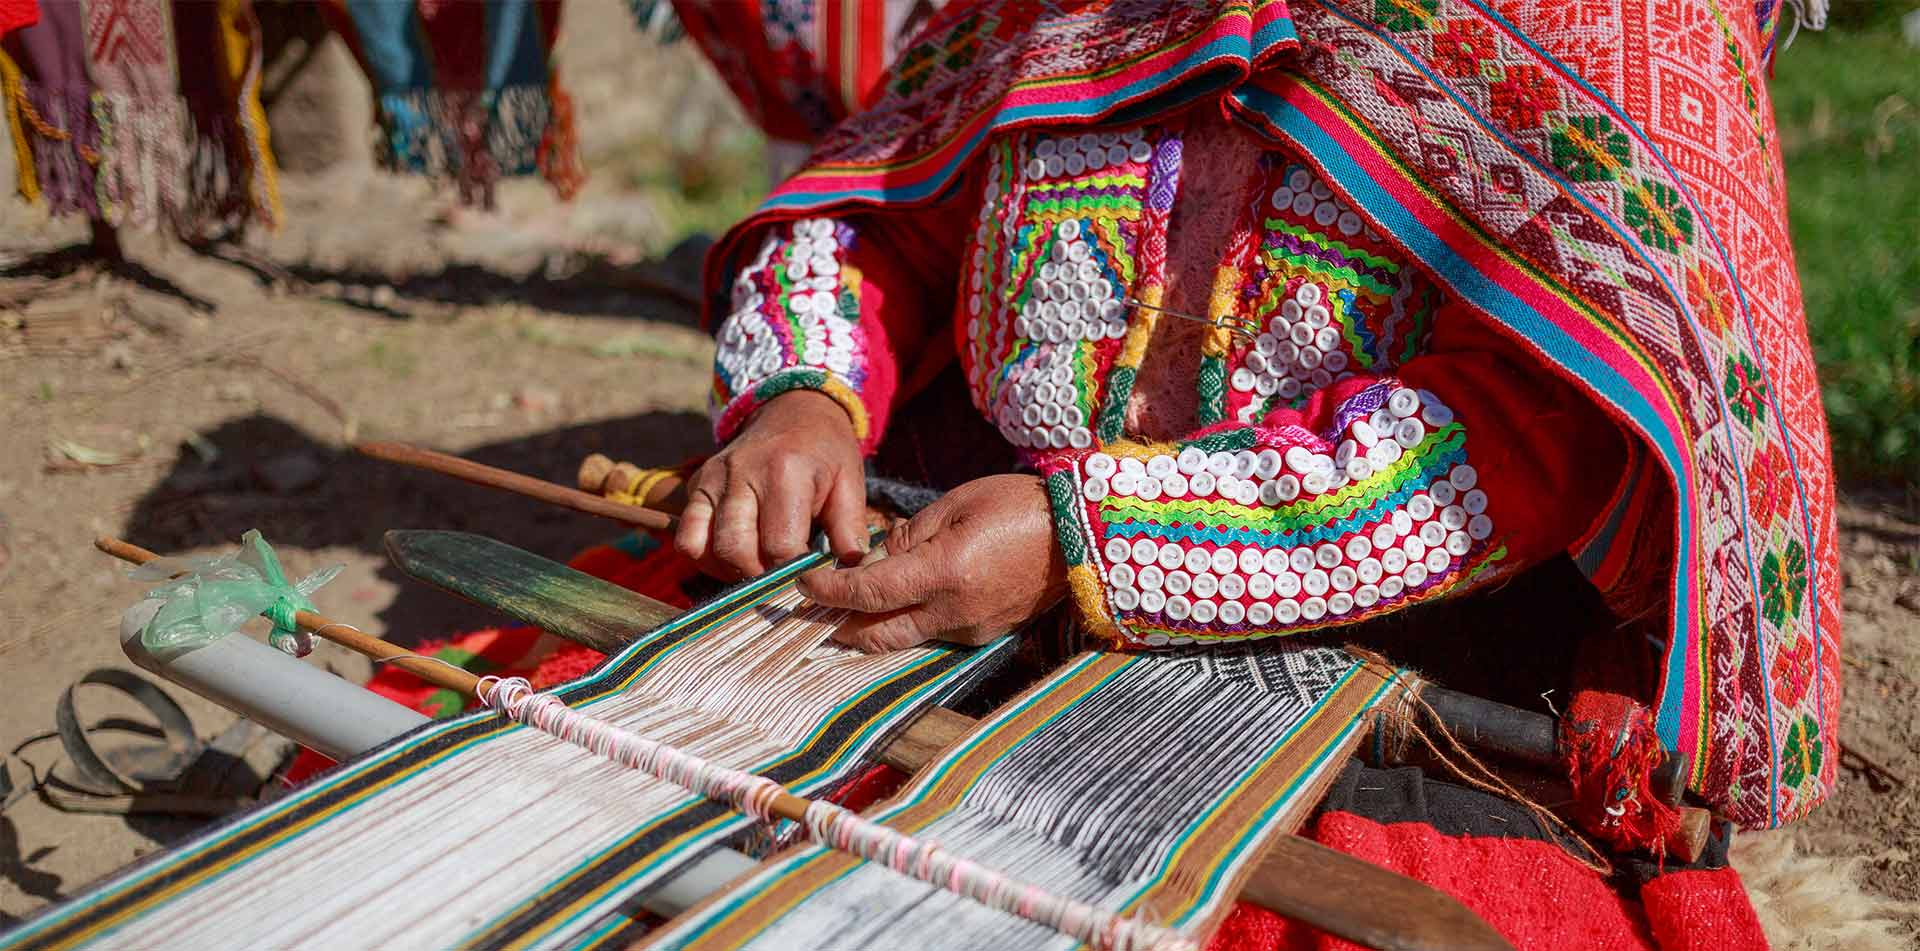 South America Peru Huilloc Sacred Valley traditional Quechua woman weaving colorful thread - luxury vacation destinations